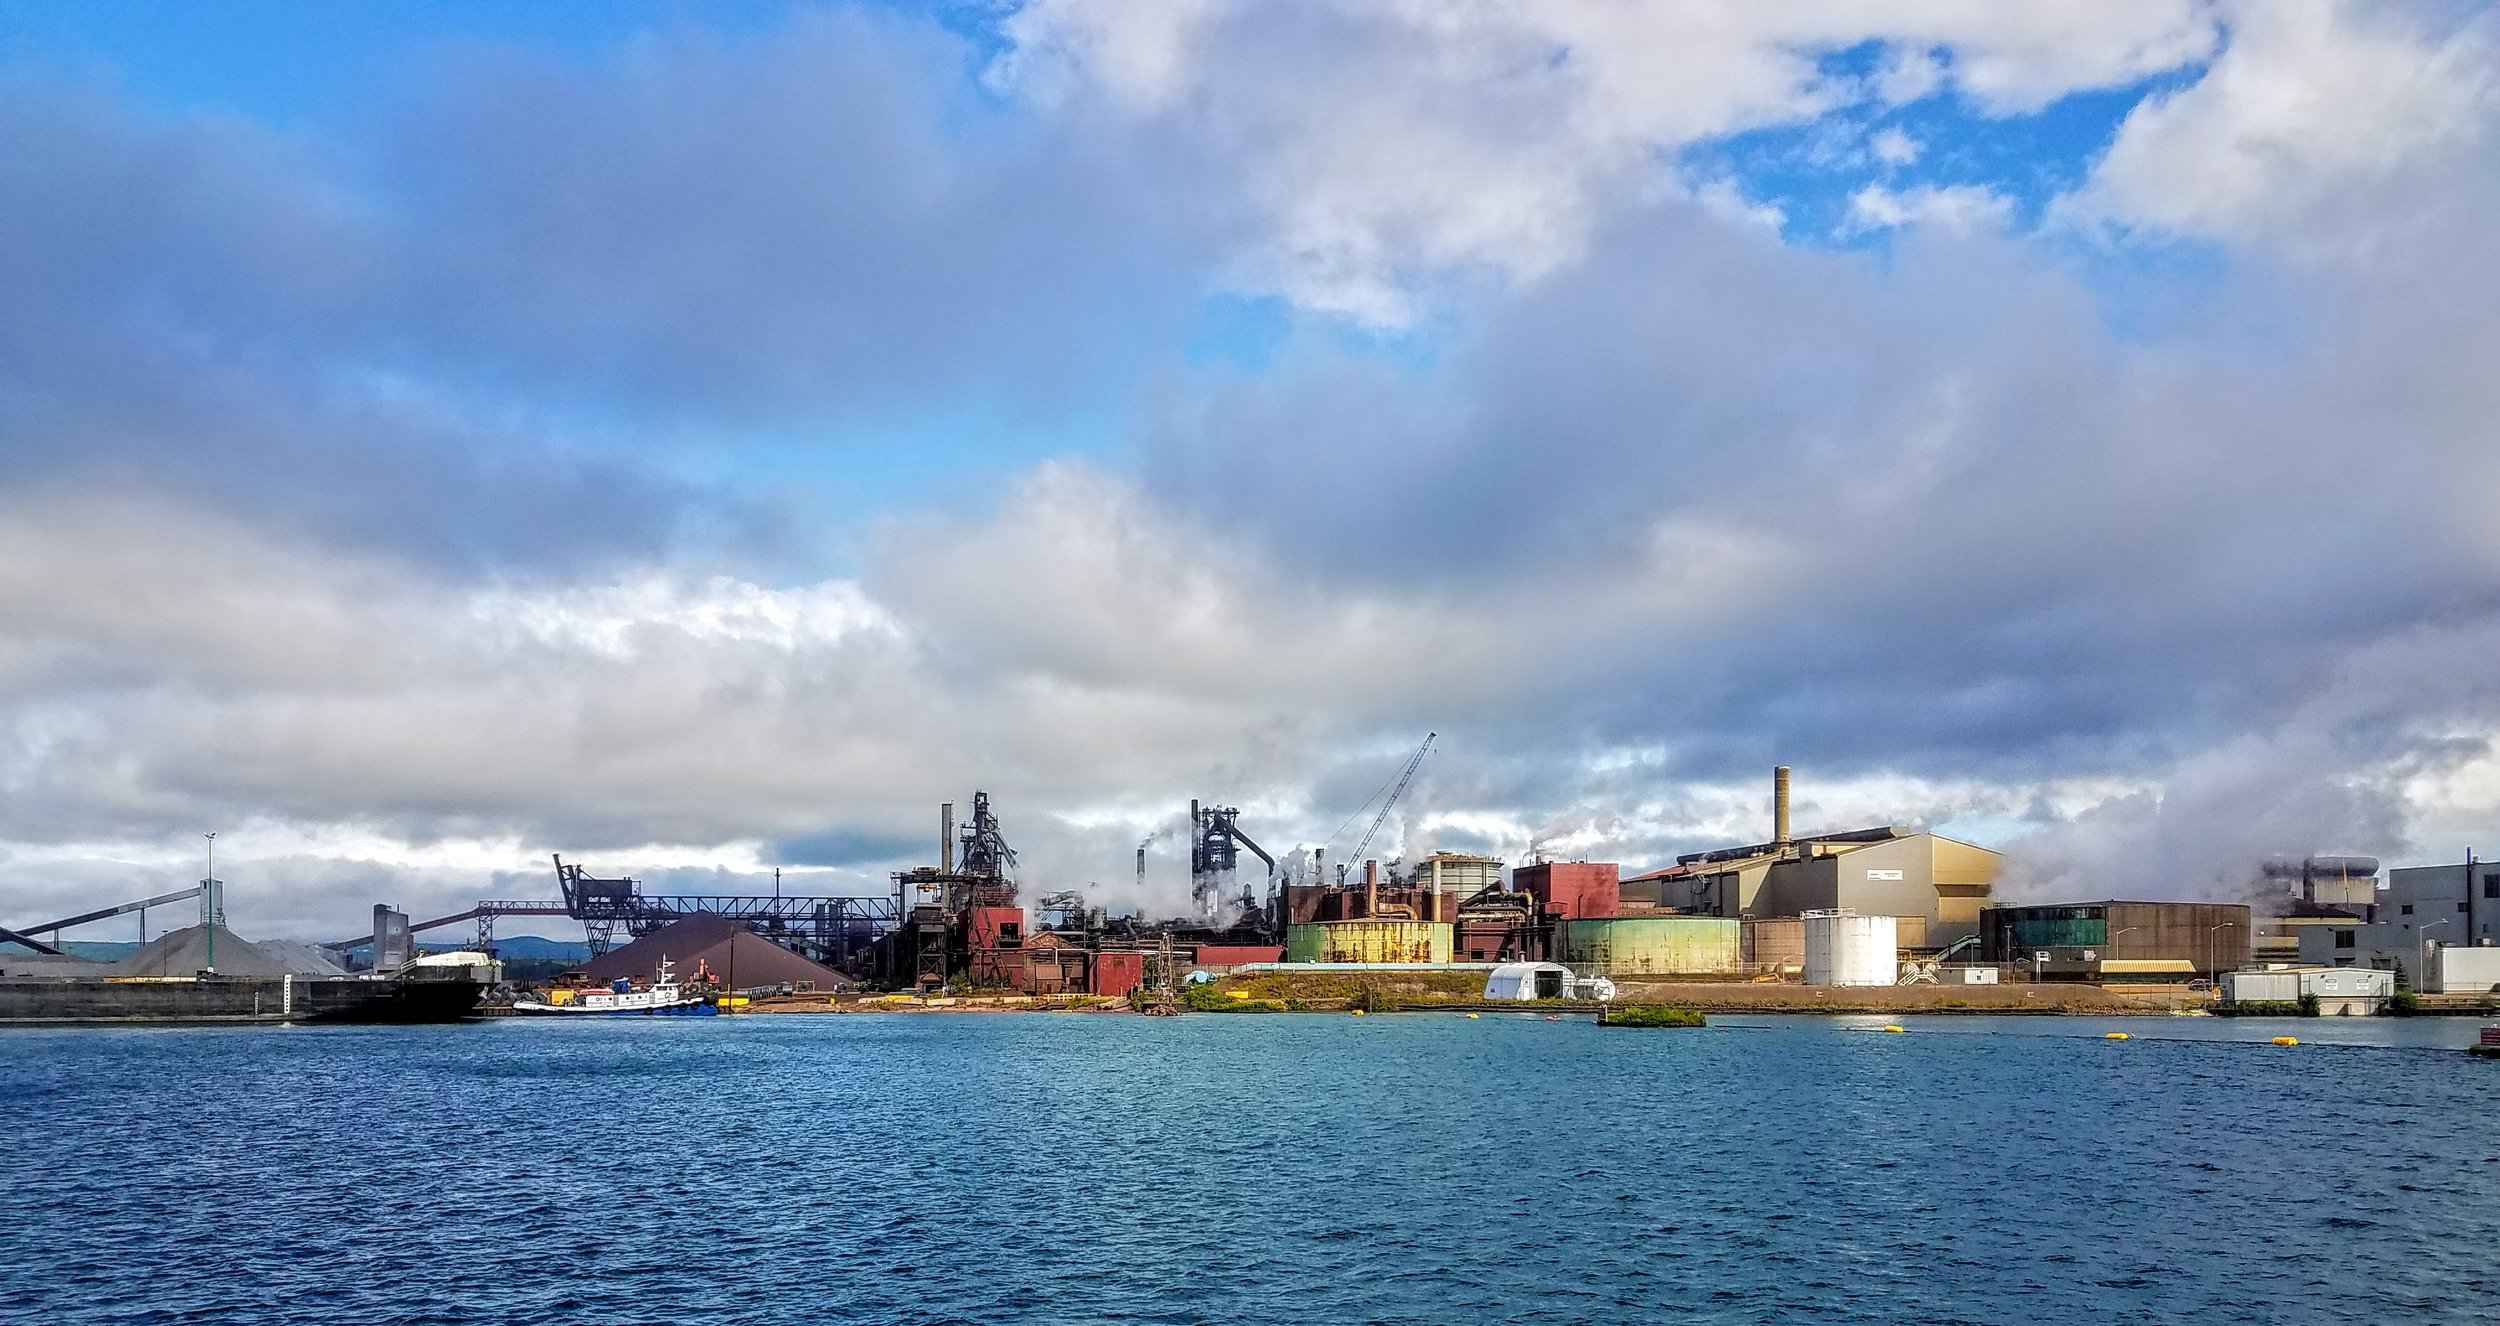 The largest steel plant in Canada sits near Sault Ste. Marie, ON